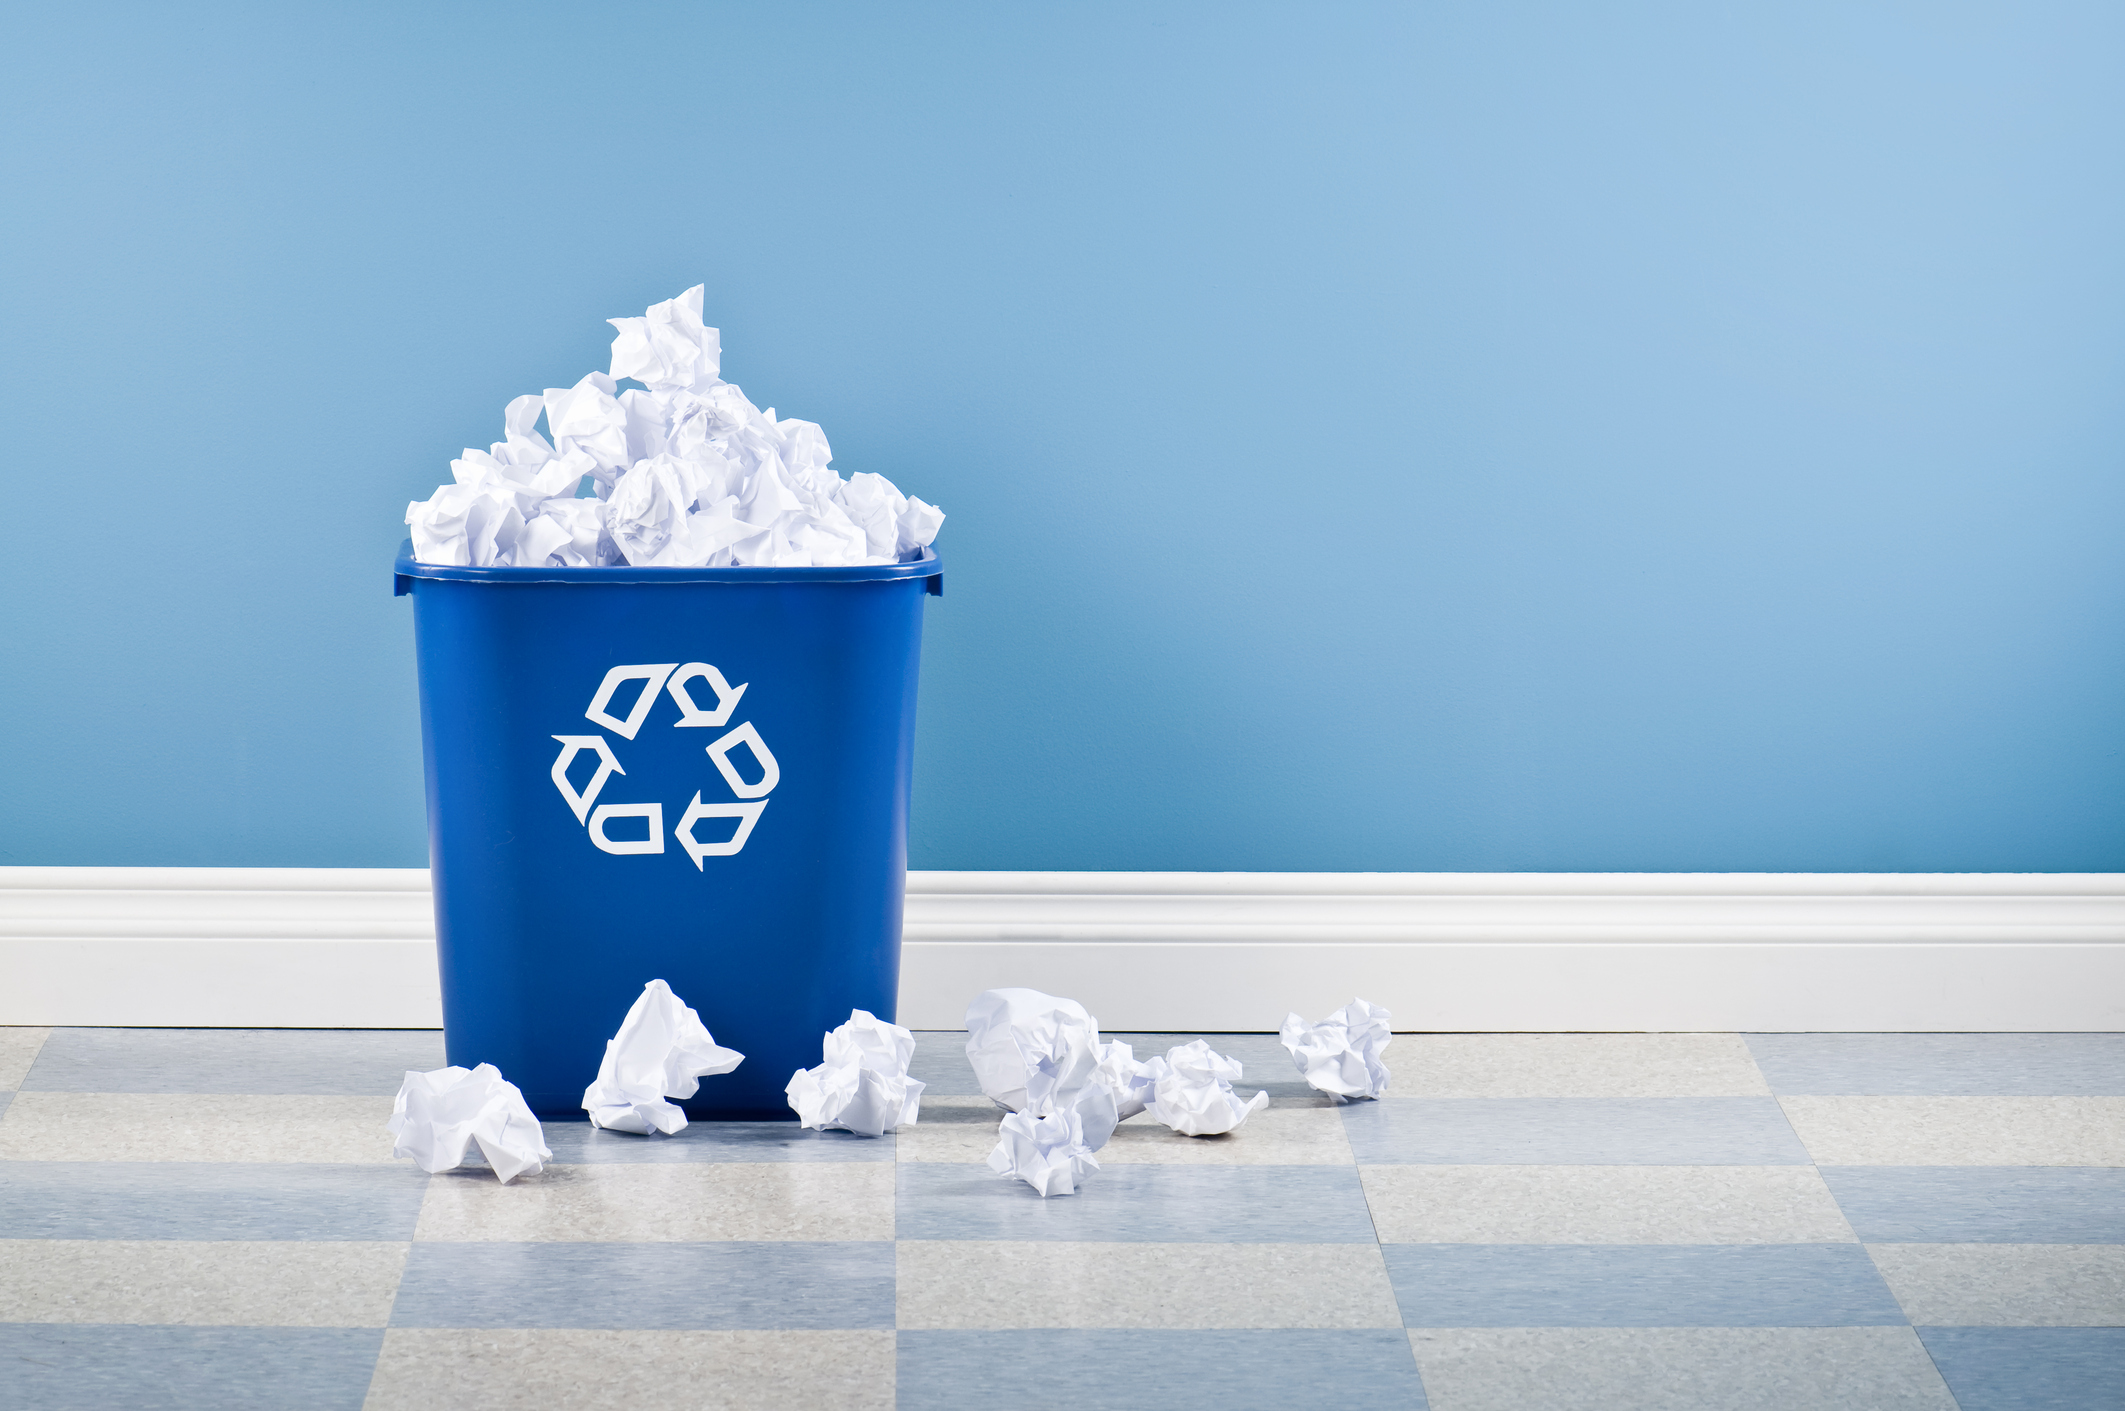 Image: iStock© - Recycling container full of paper